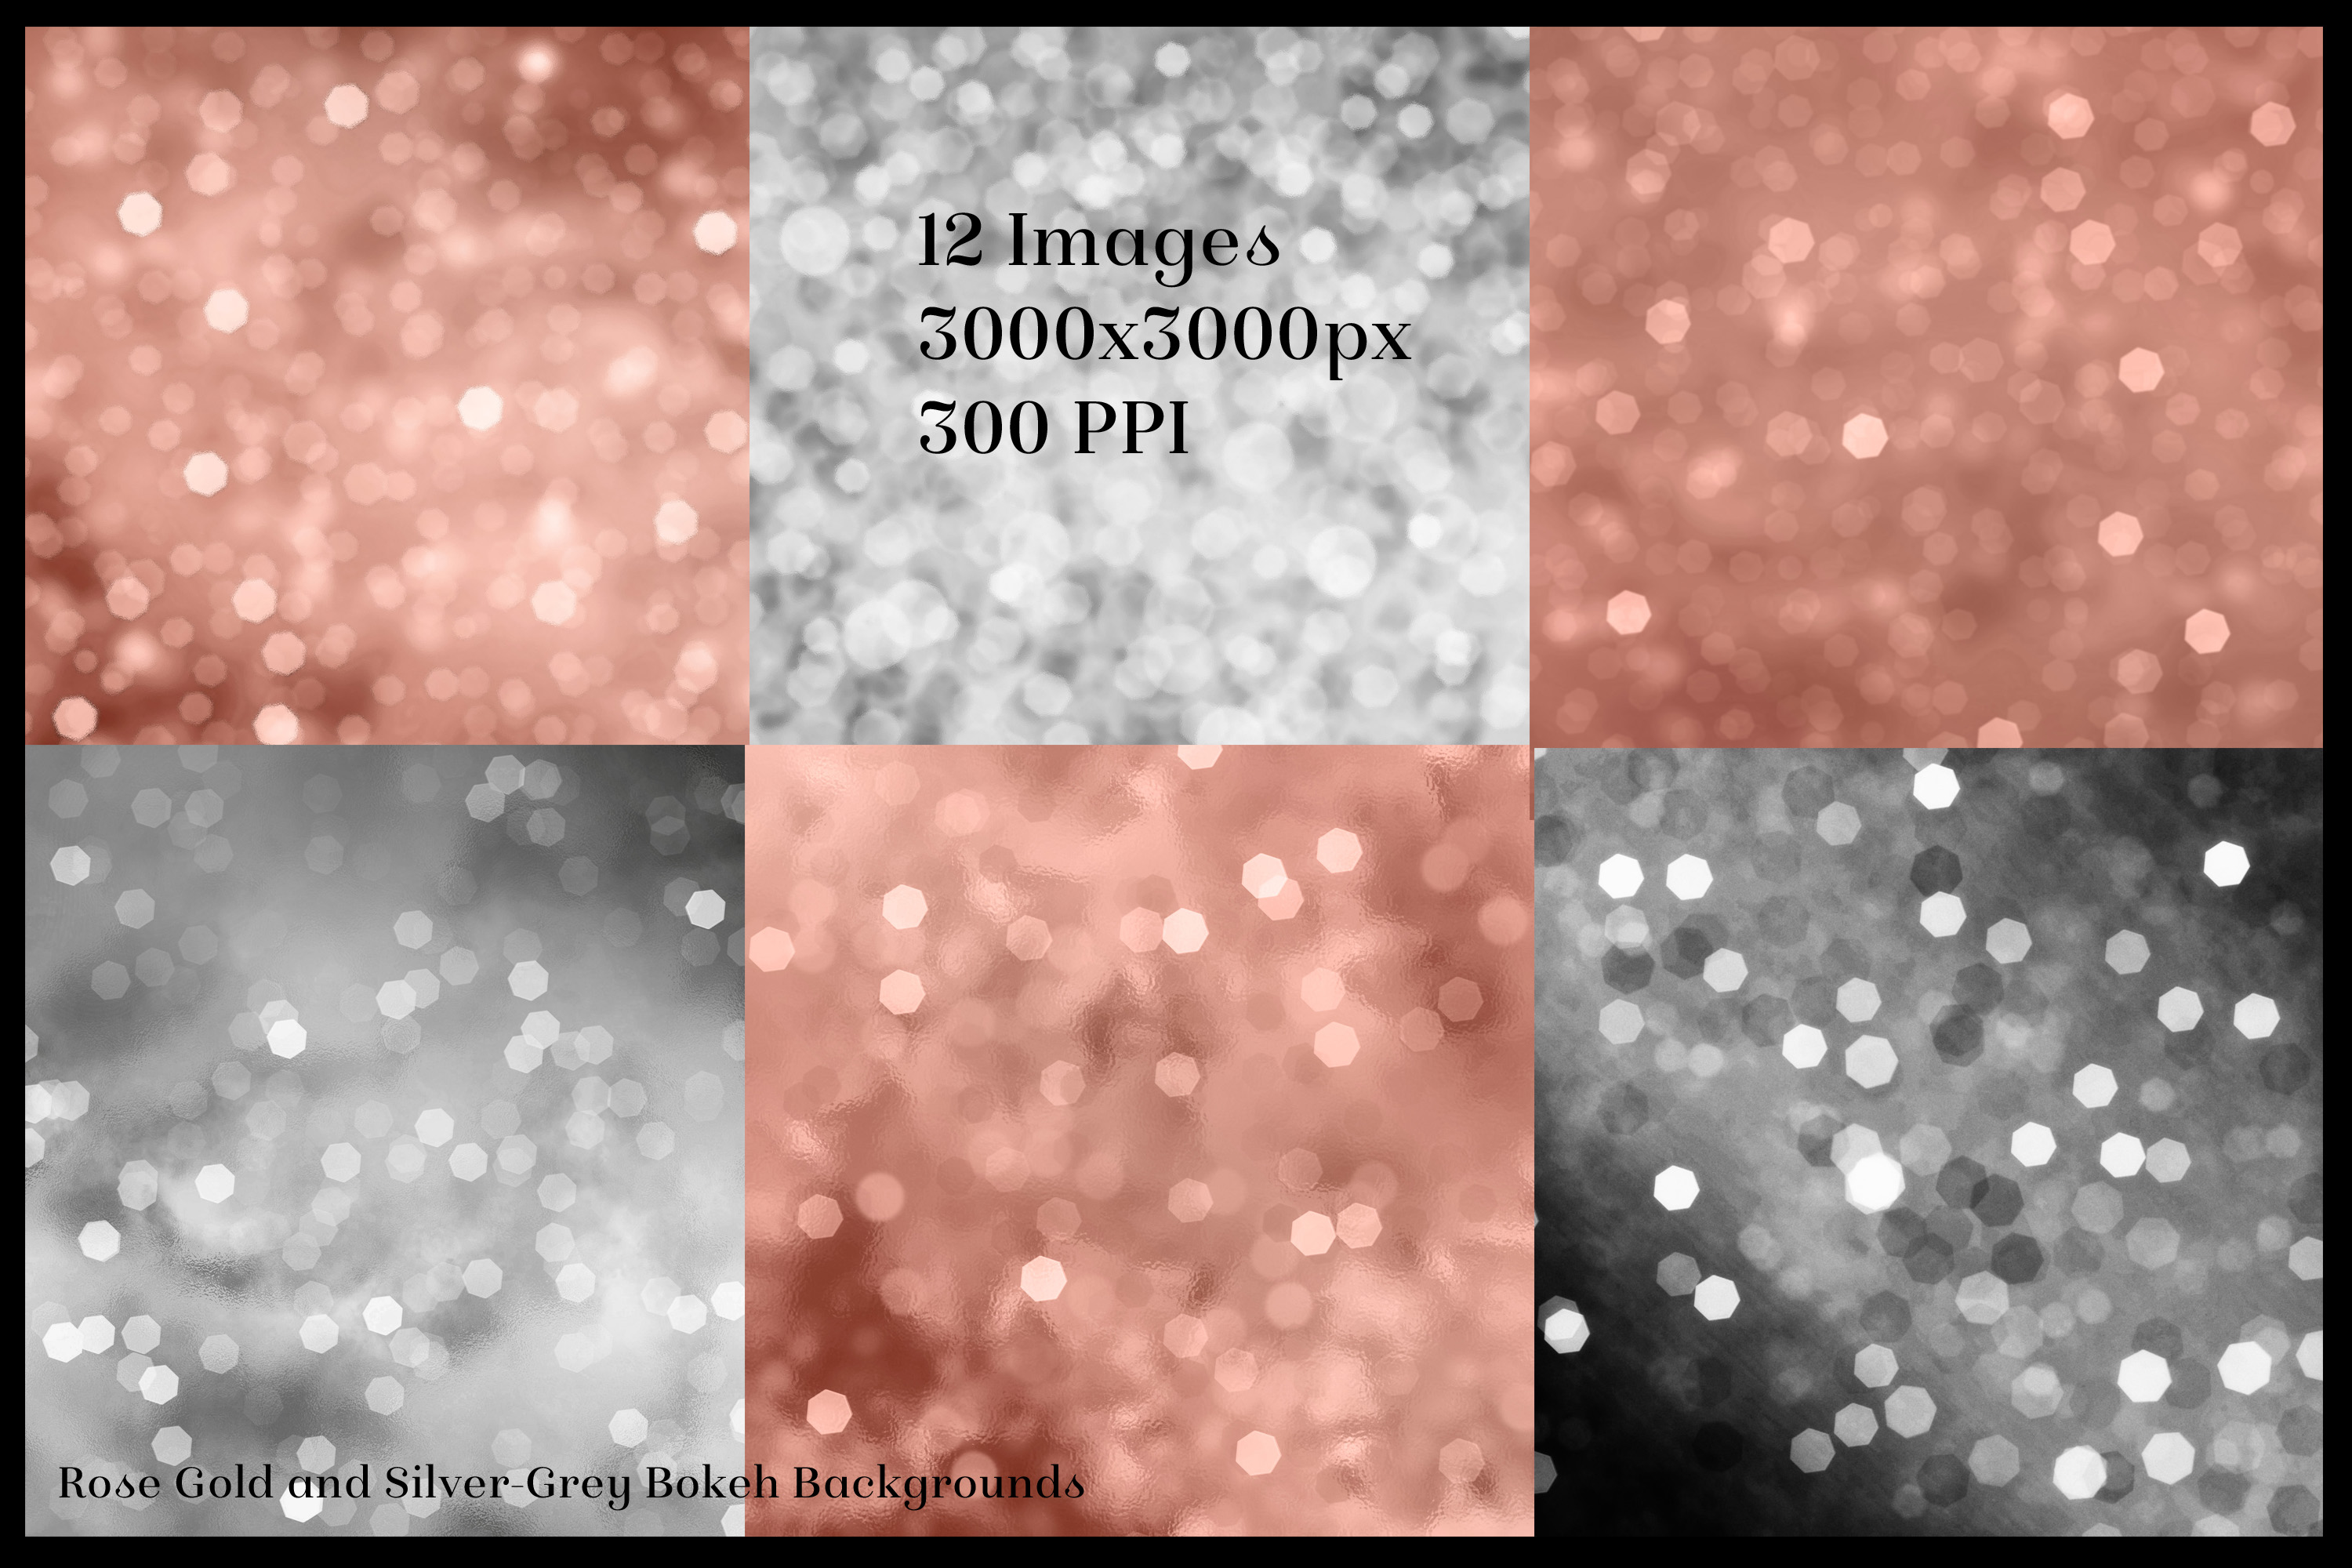 Rose Gold and Silver-Grey Bokeh Backgrounds - 12 Image Set example image 2